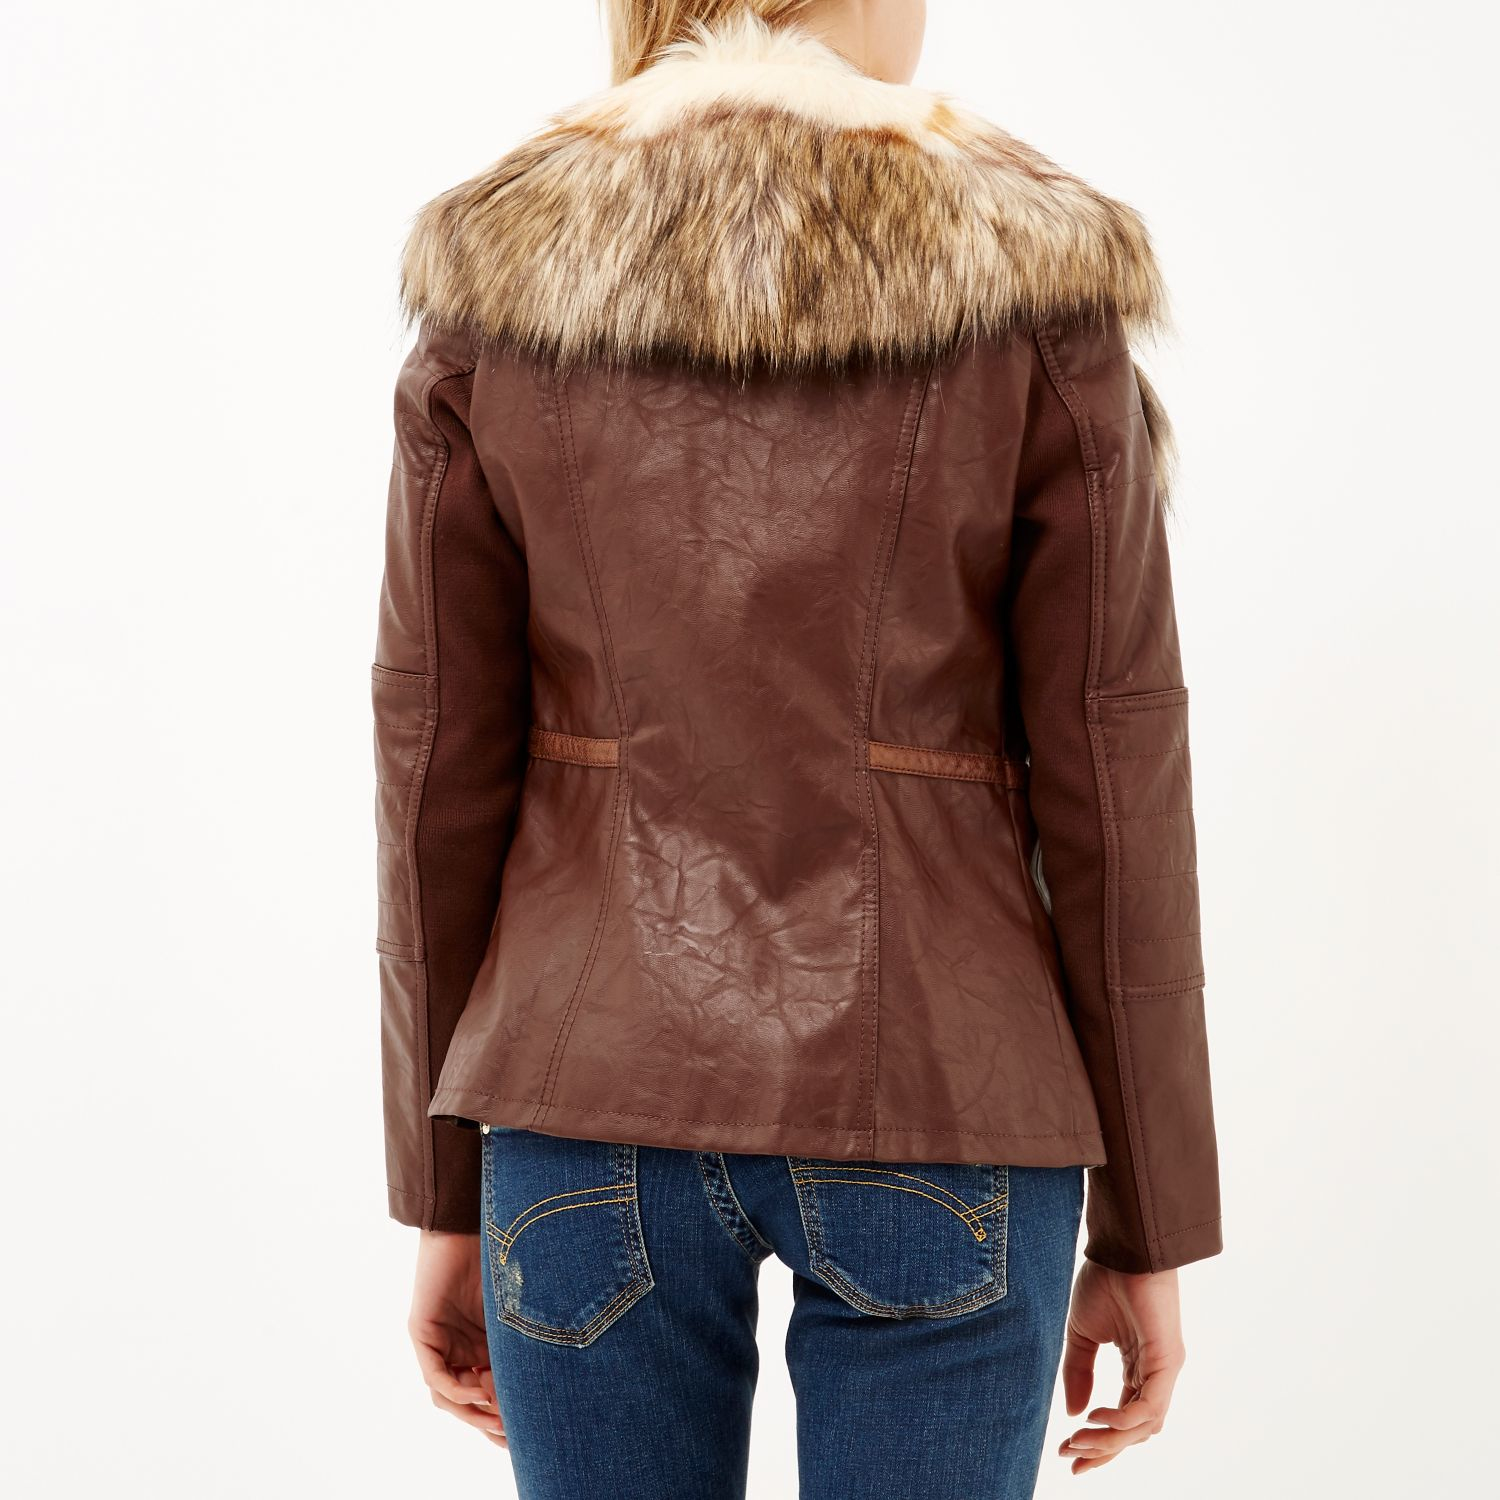 Red leather jacket river island – Modern fashion jacket photo blog